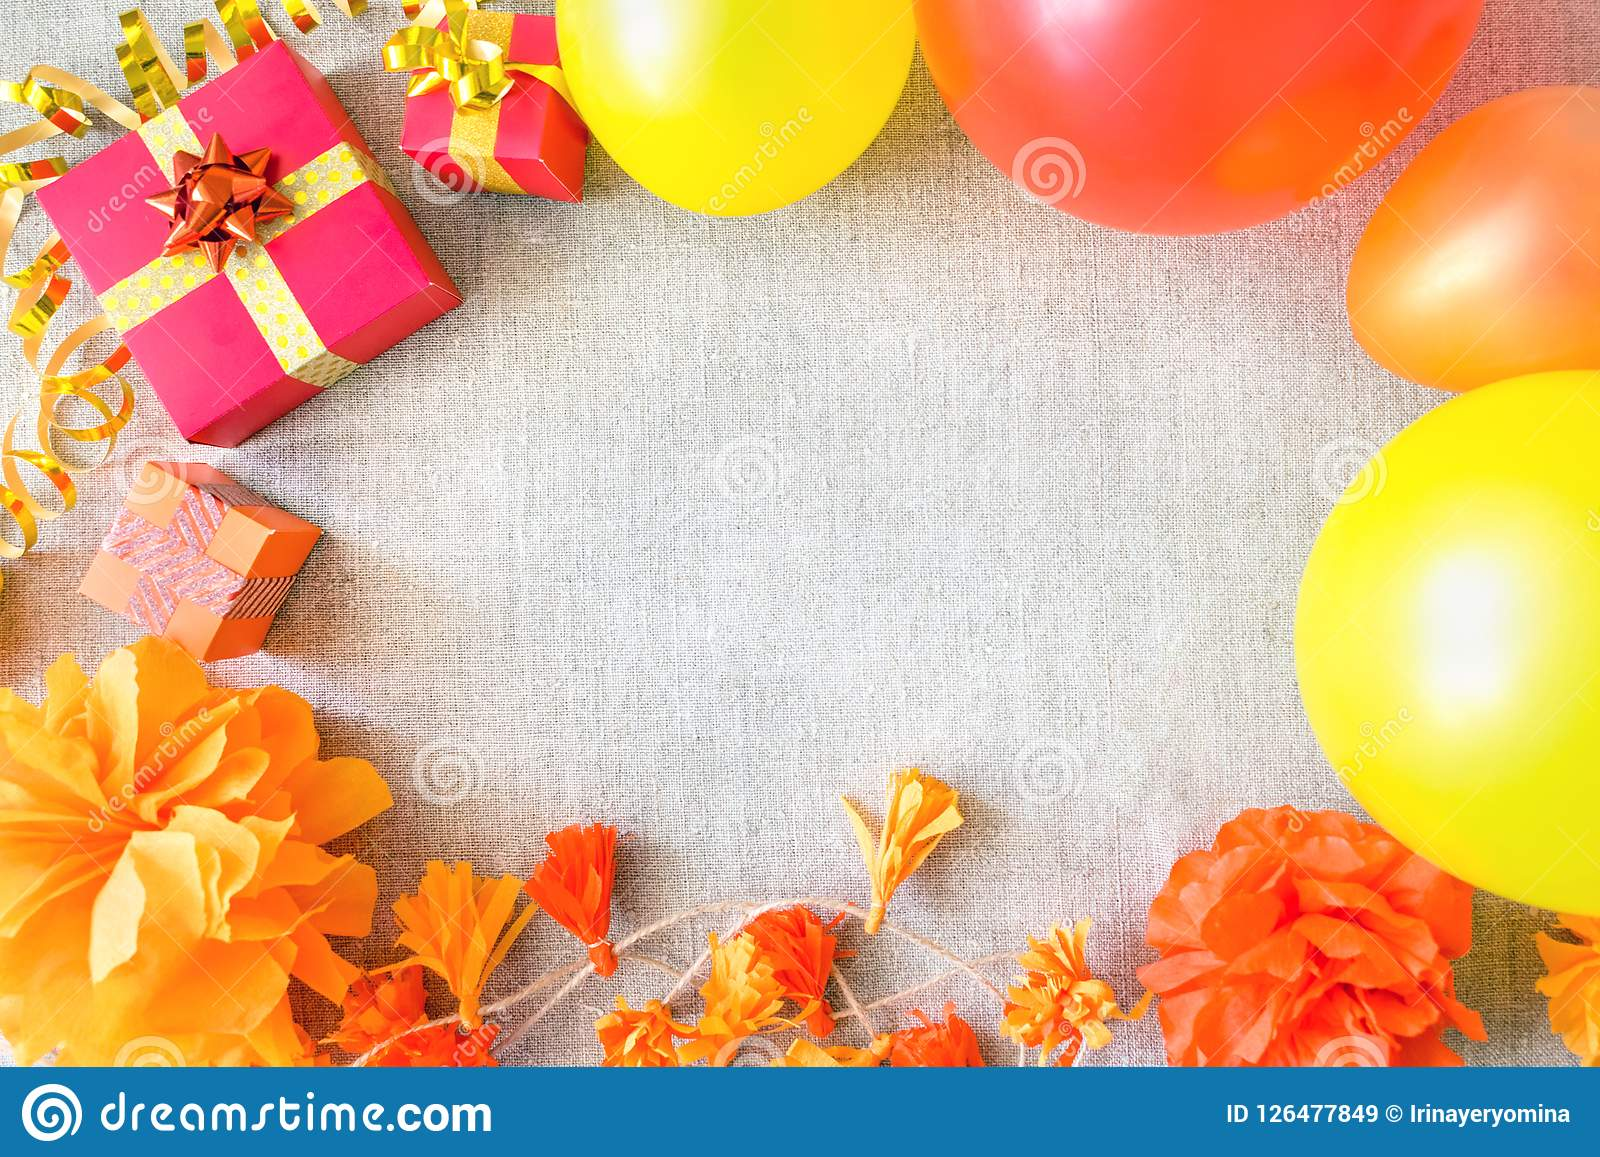 Birthday Party Background With Festive Decor Orange Yellow And